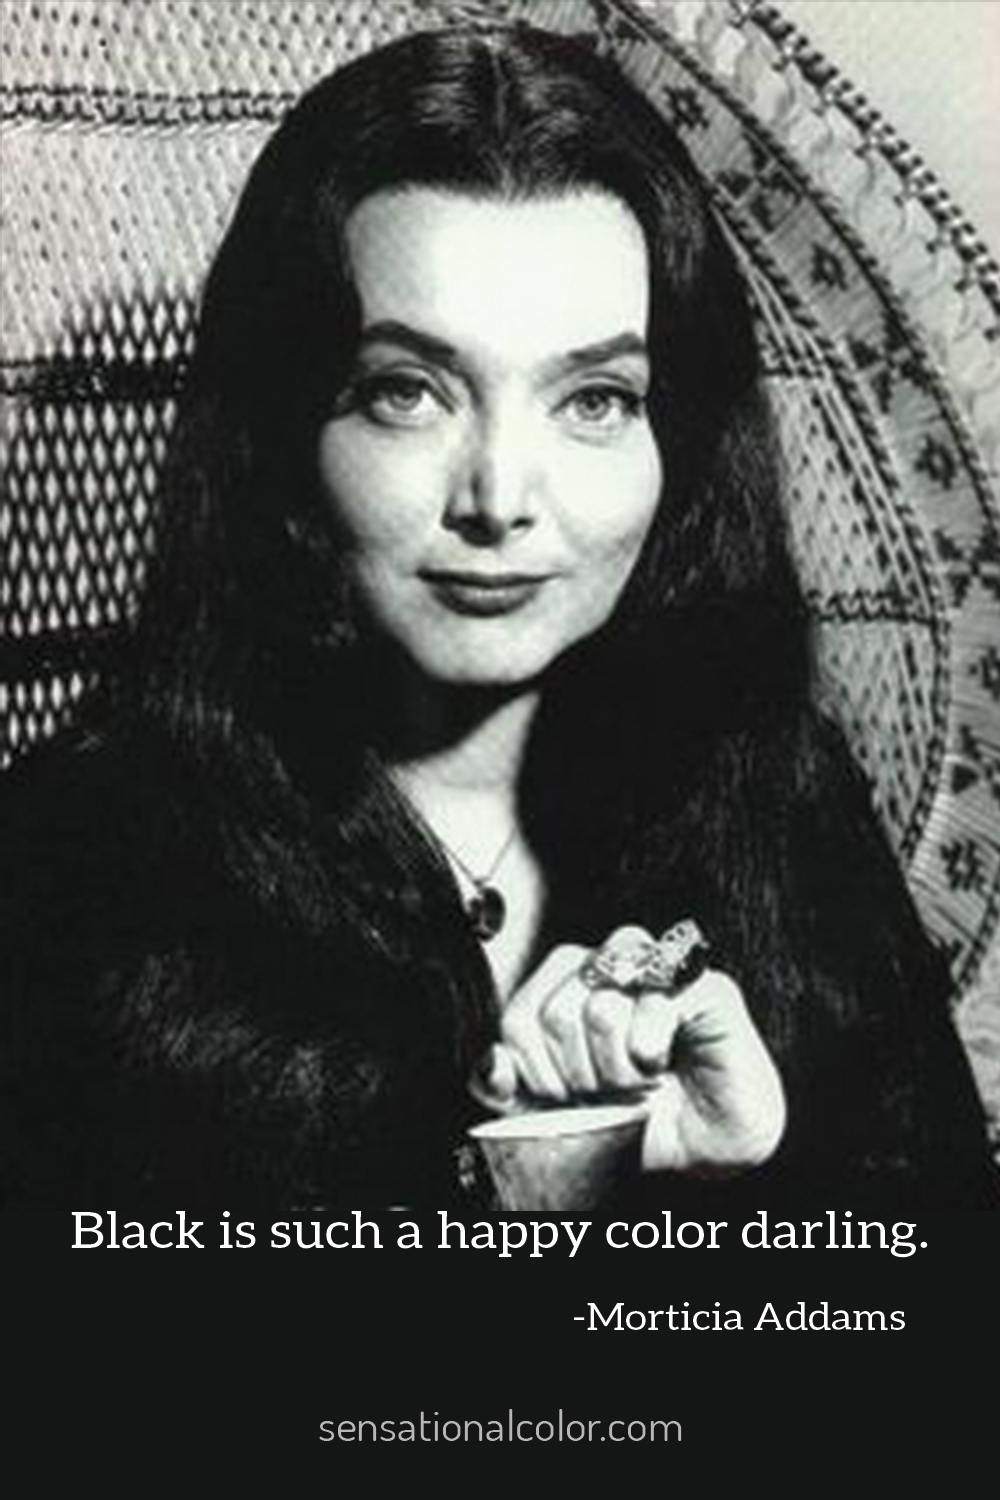 """Black is such a happy color darling.""-Morticia Addams"